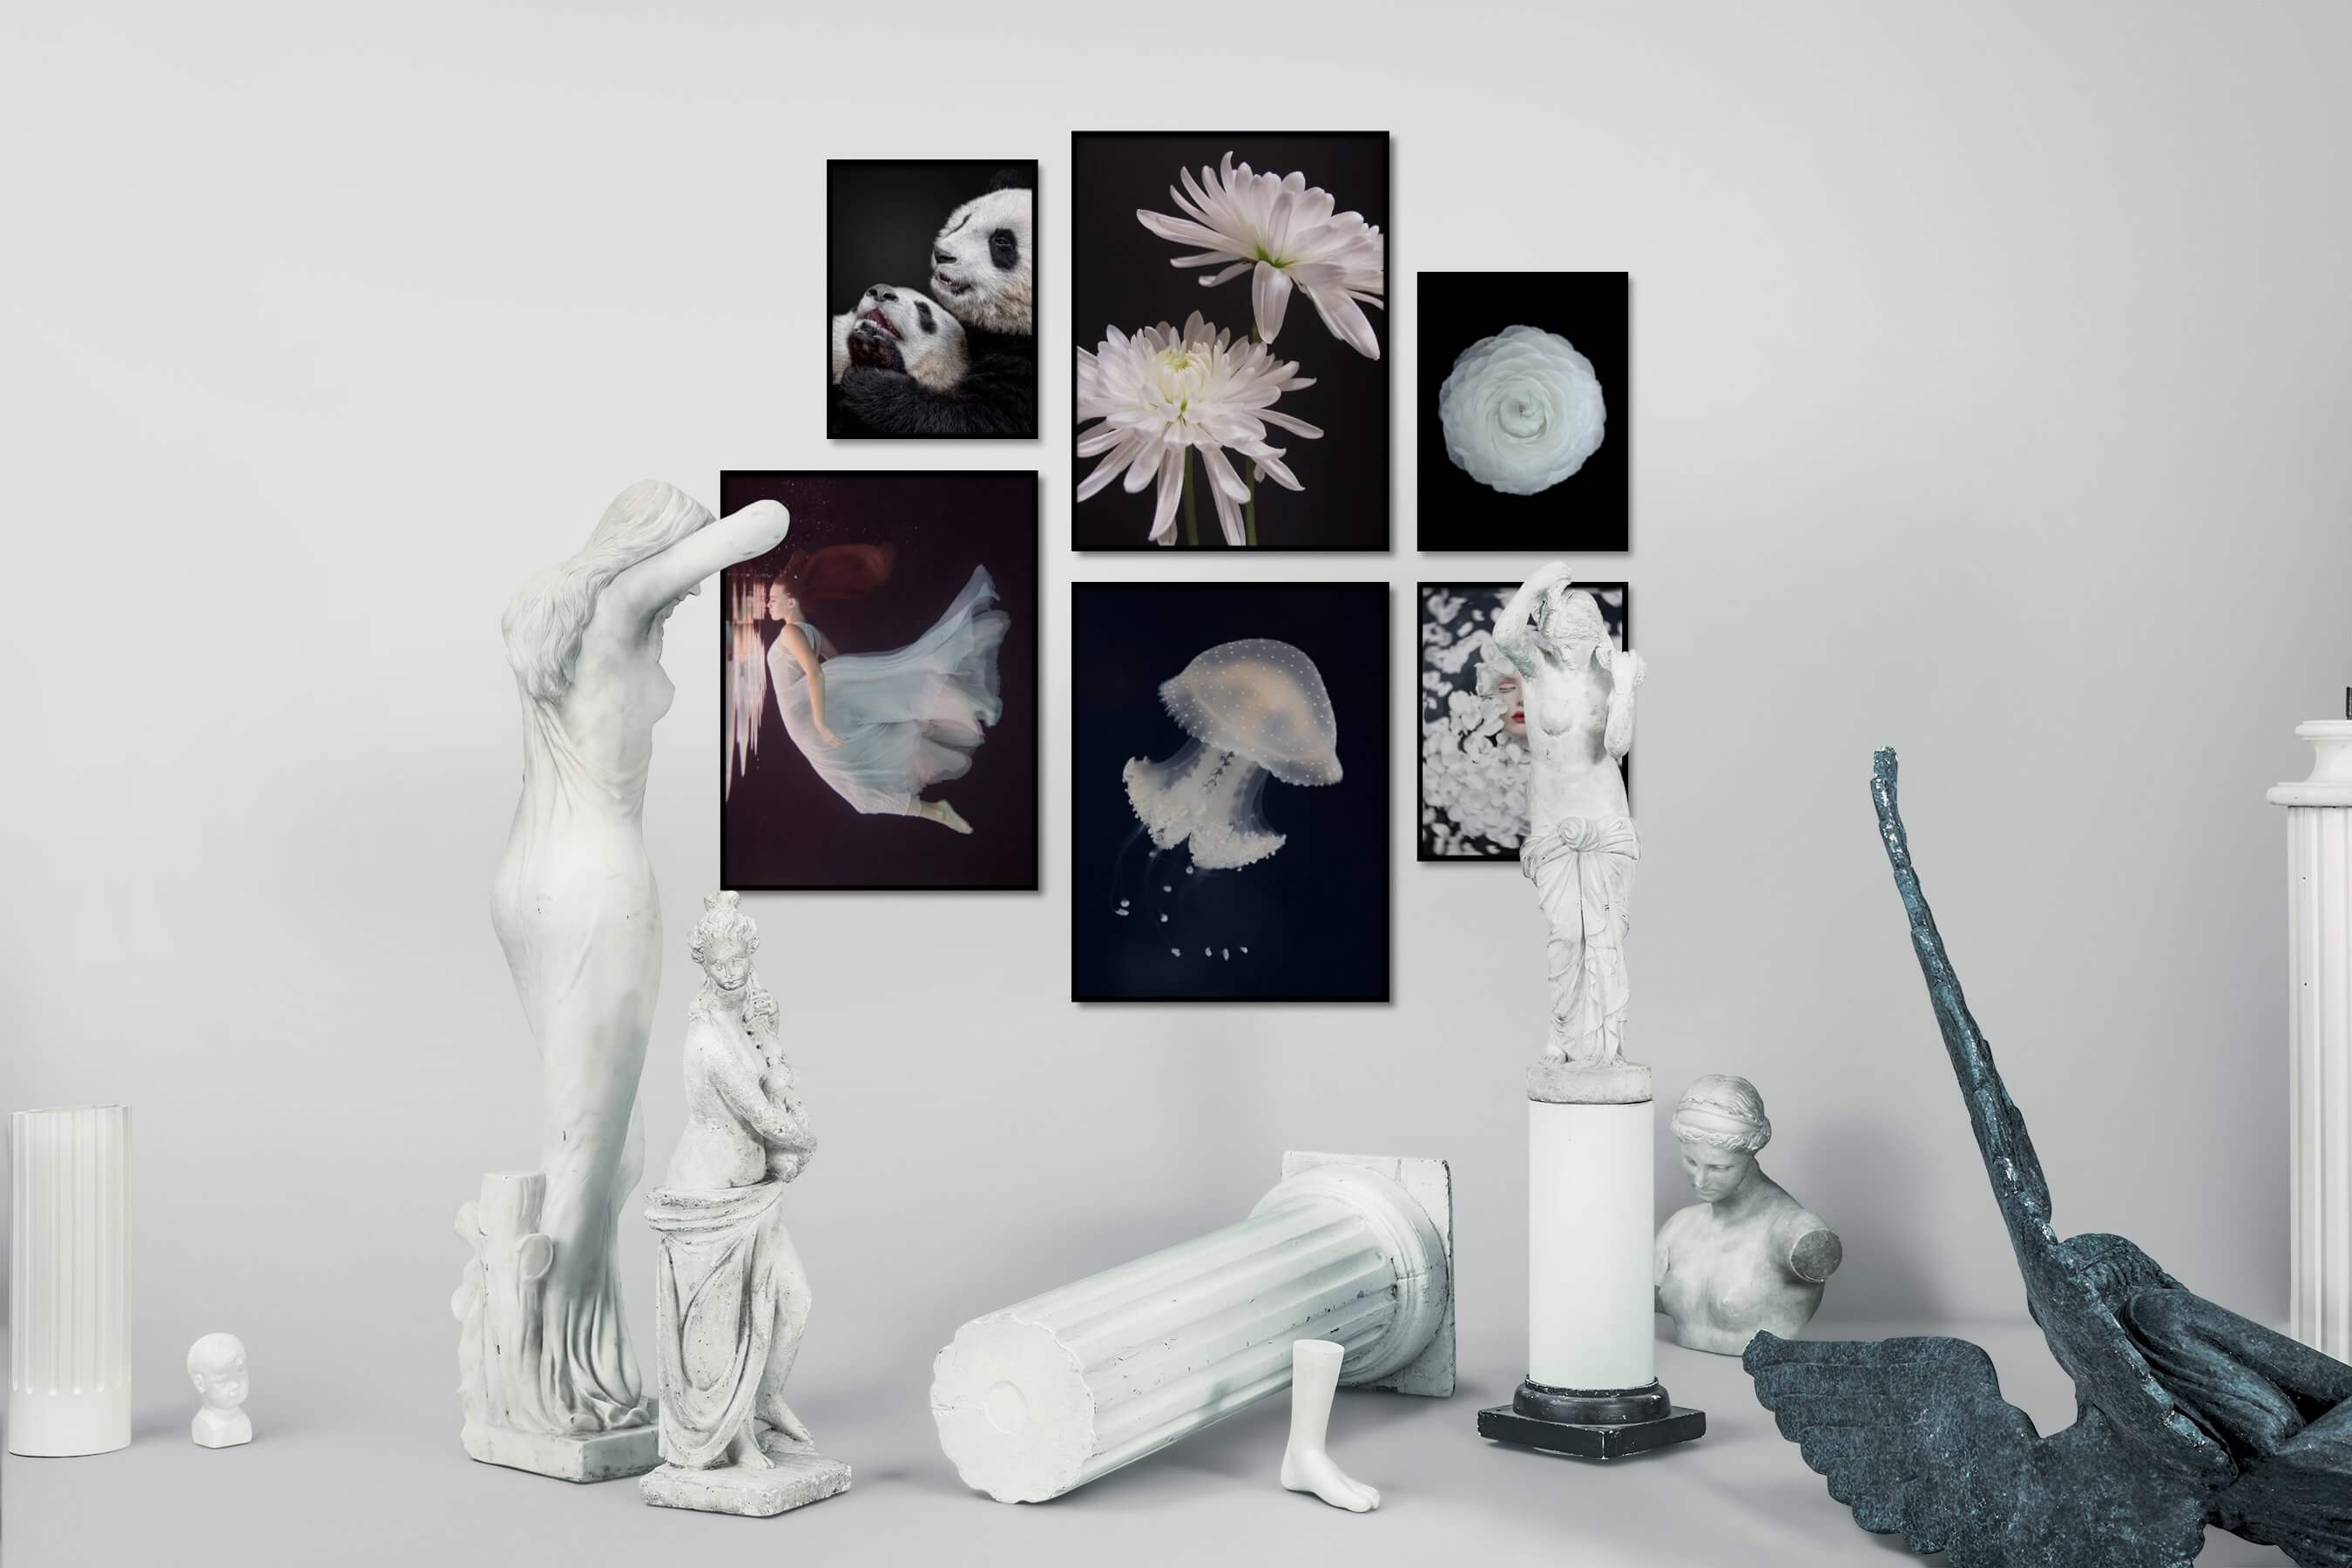 Gallery wall idea with six framed pictures arranged on a wall depicting Animals, Dark Tones, For the Moderate, Flowers & Plants, Fashion & Beauty, Beach & Water, and For the Minimalist